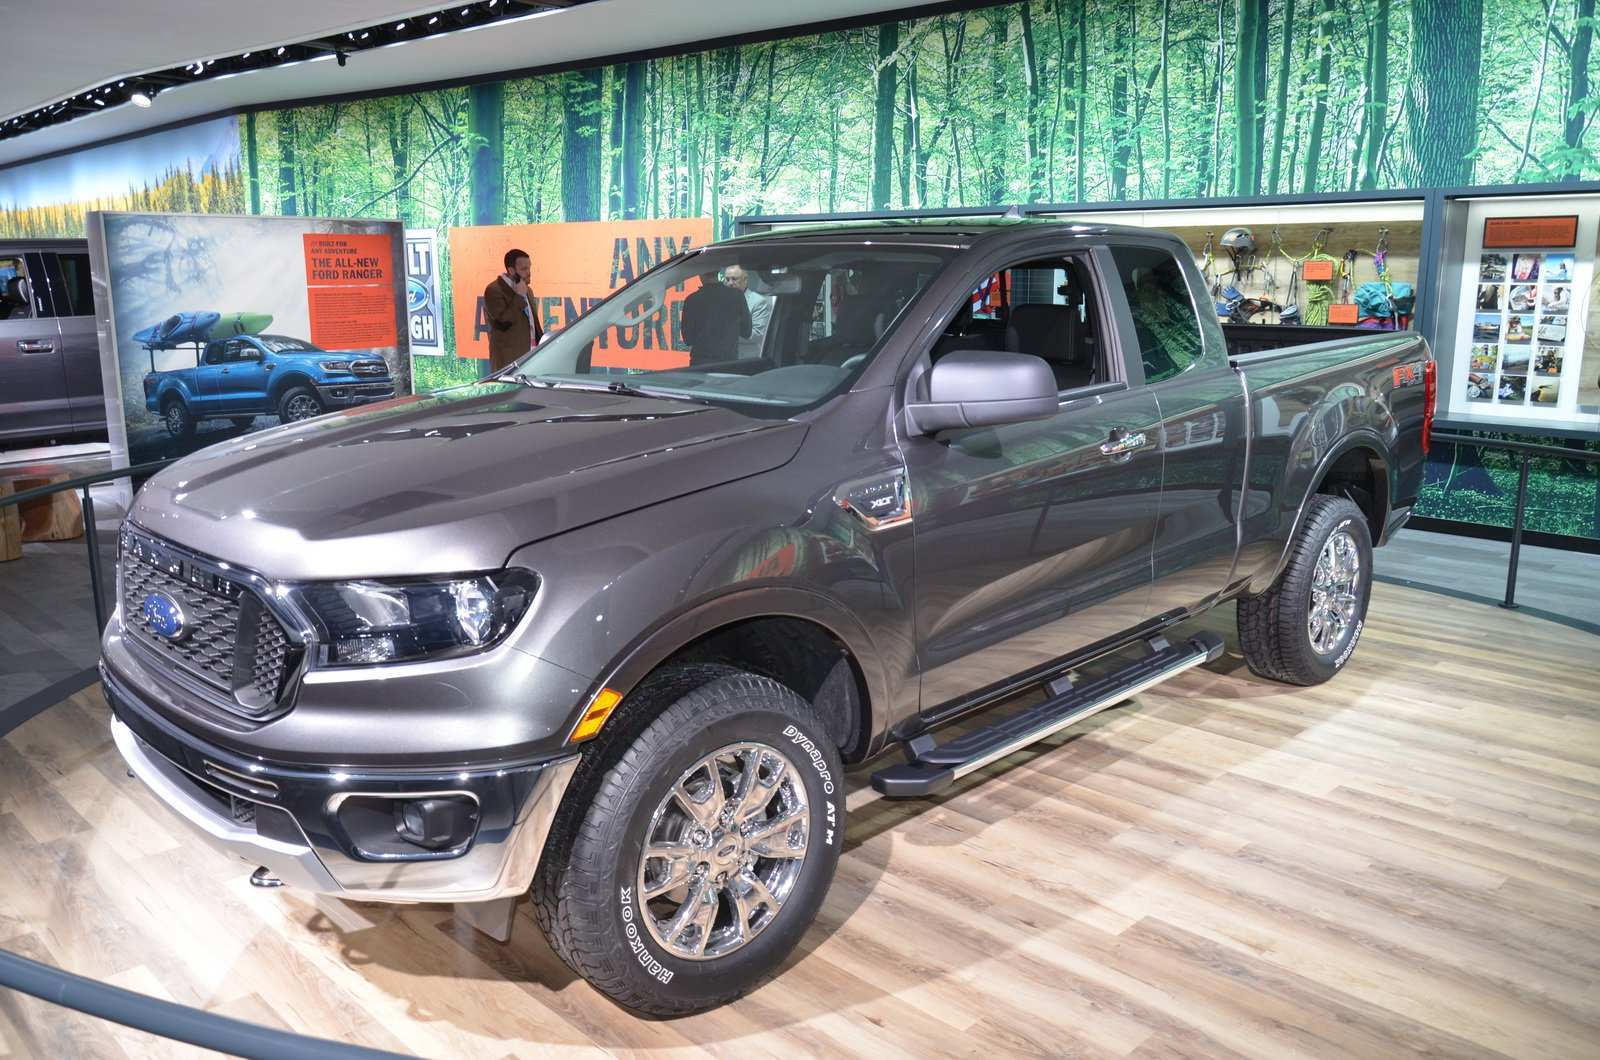 59 A 2019 Ford Ranger 2 Door Review And Release Date